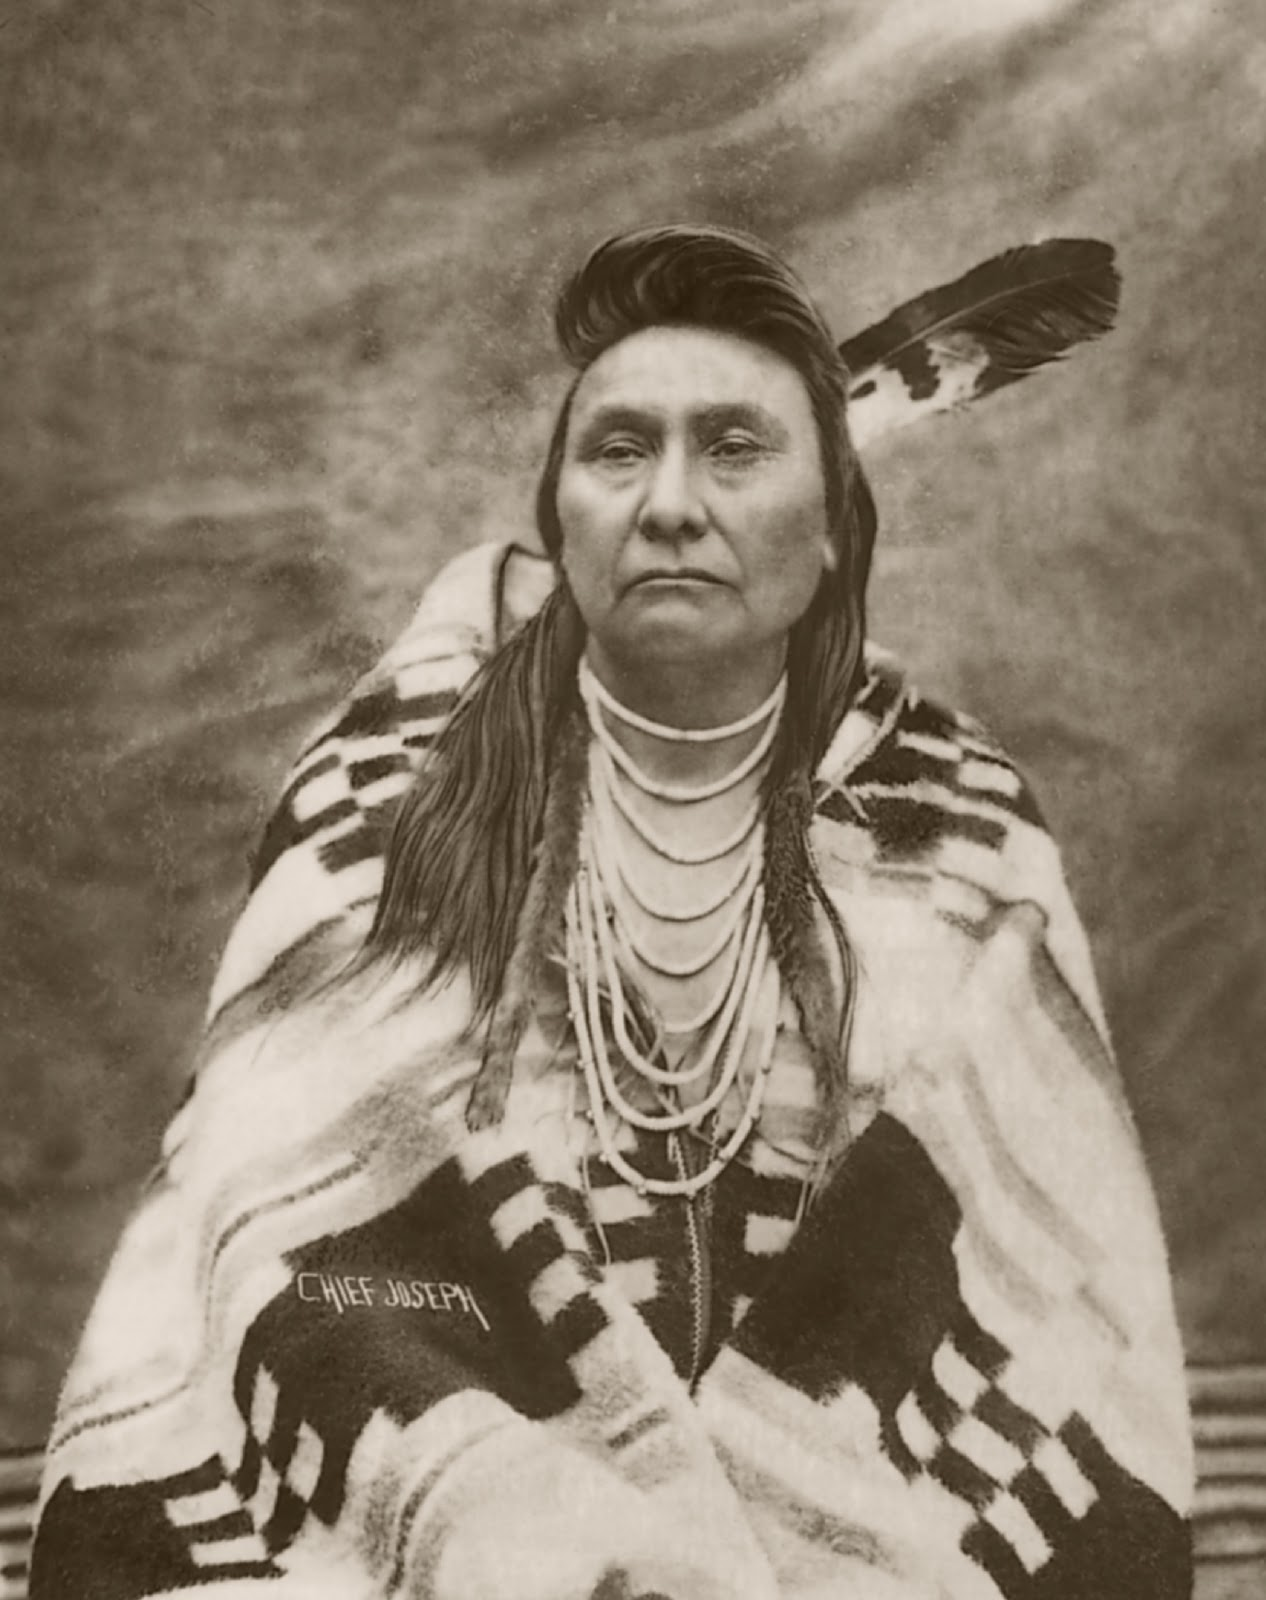 nezperce_chiefjoseph